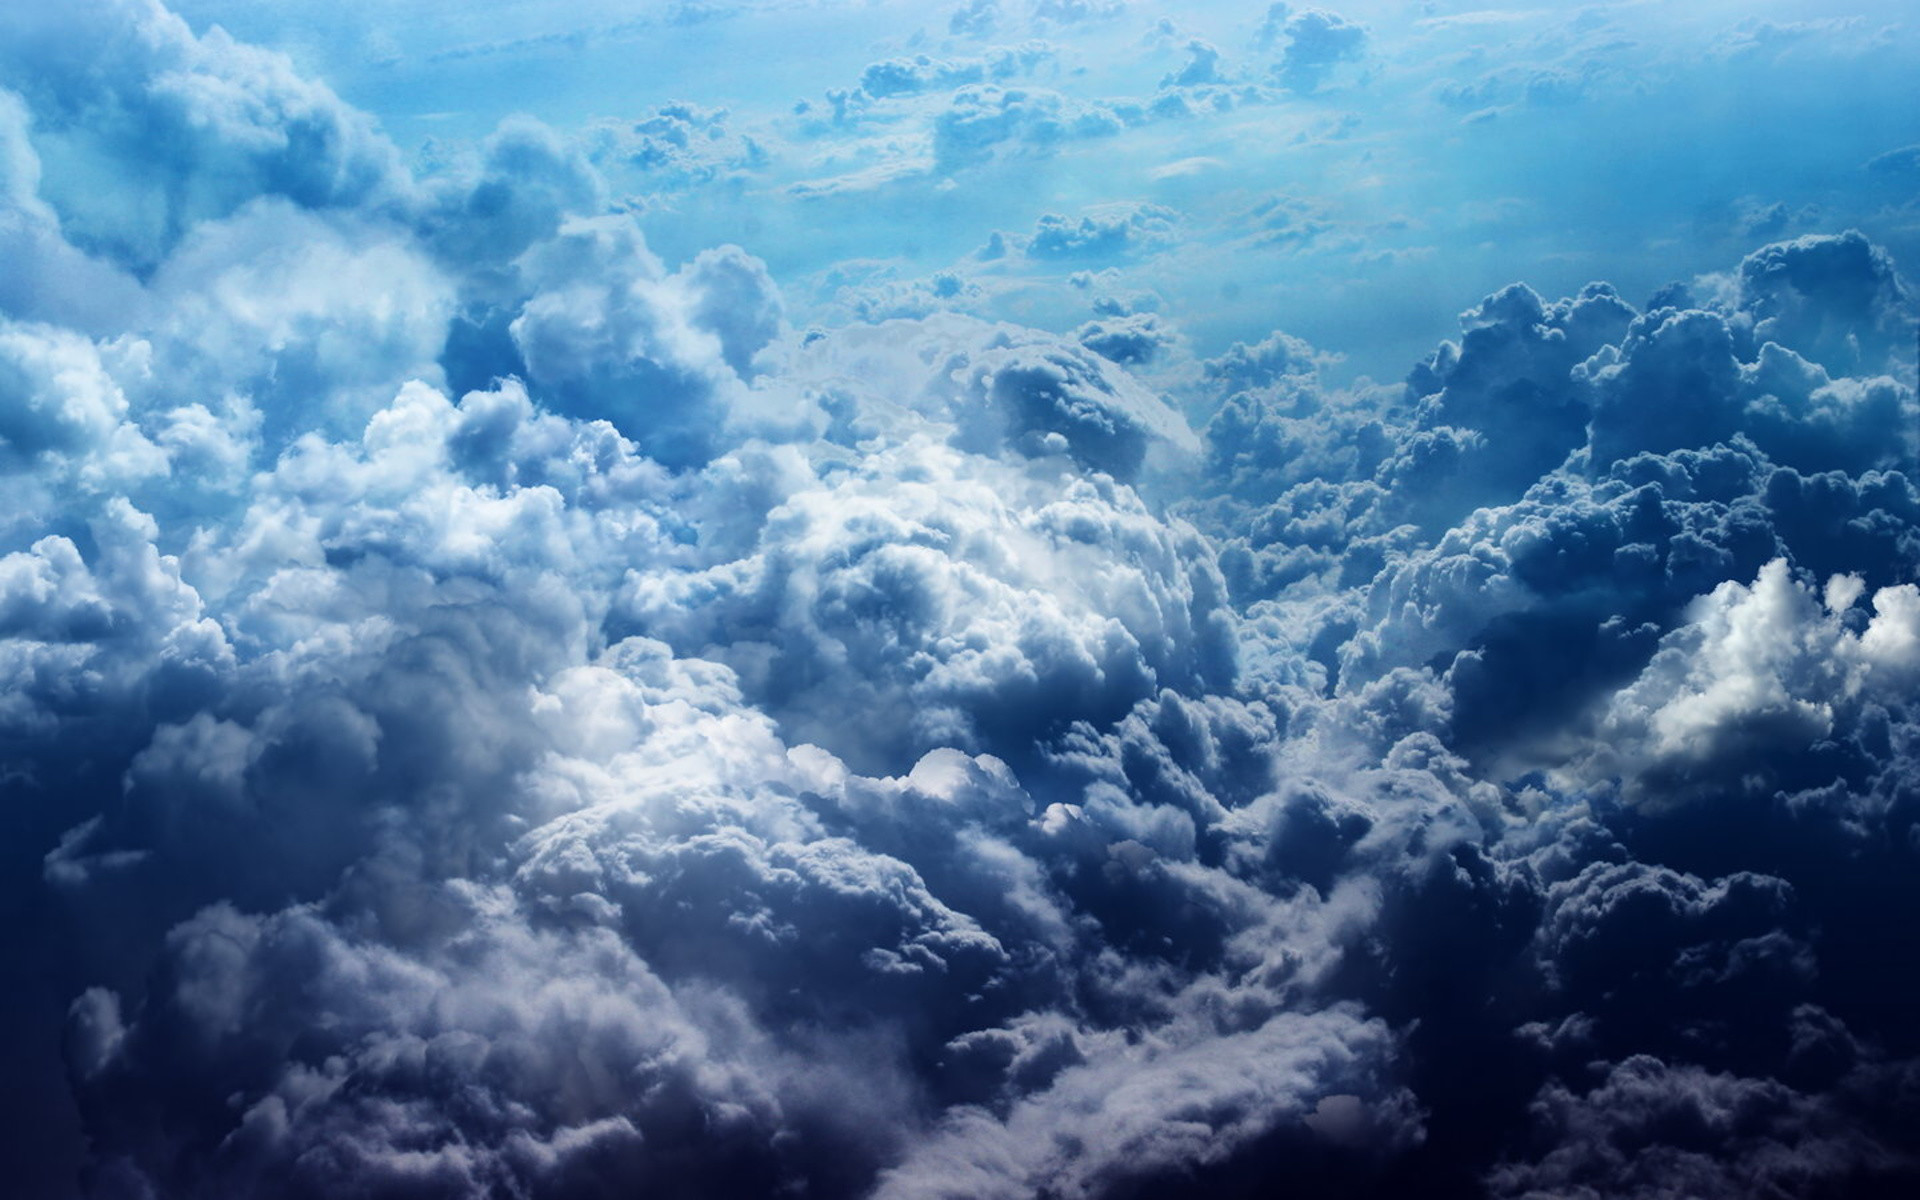 Res: 1920x1200, Cloud HD PNG - Clouds PNG HD Images